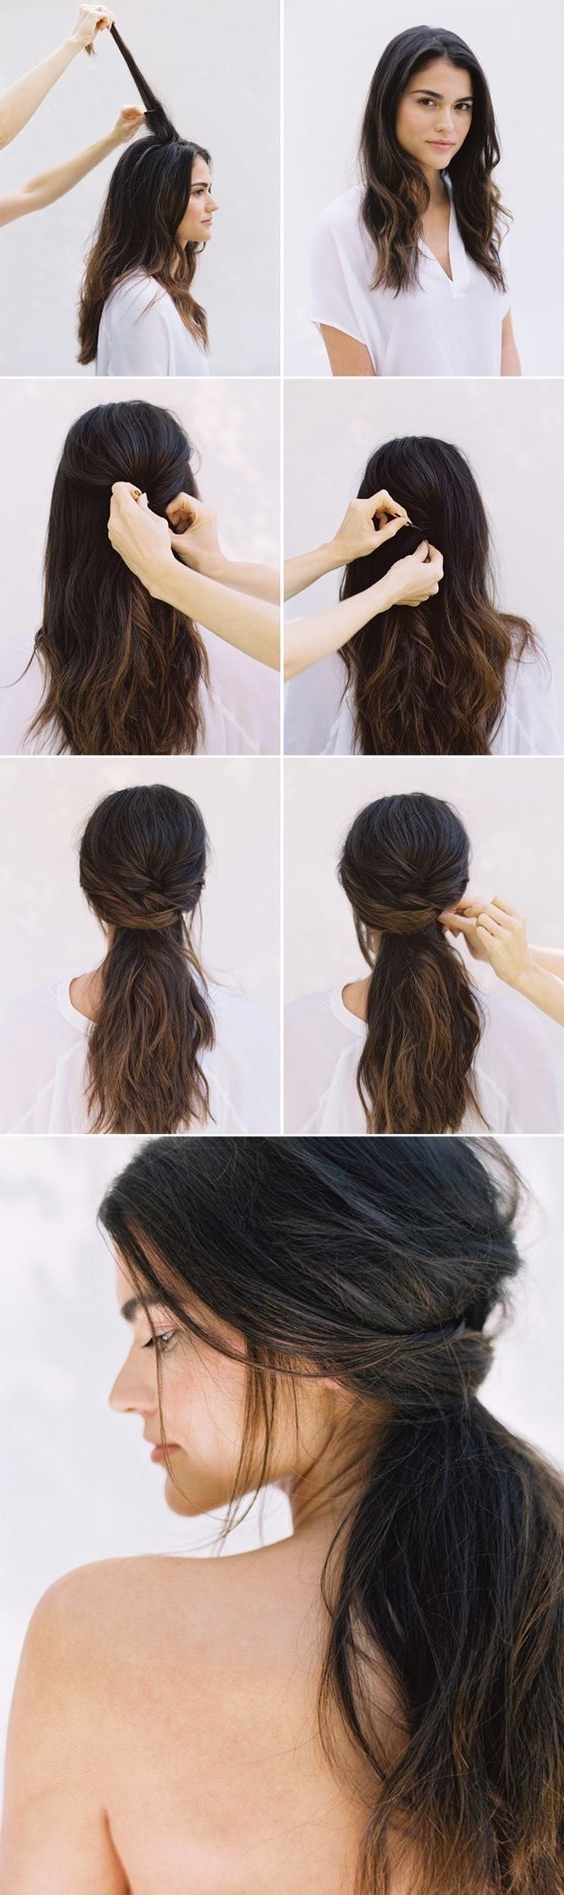 up styles for thick hair 15 best of easy updo hairstyles for thick hair 6938